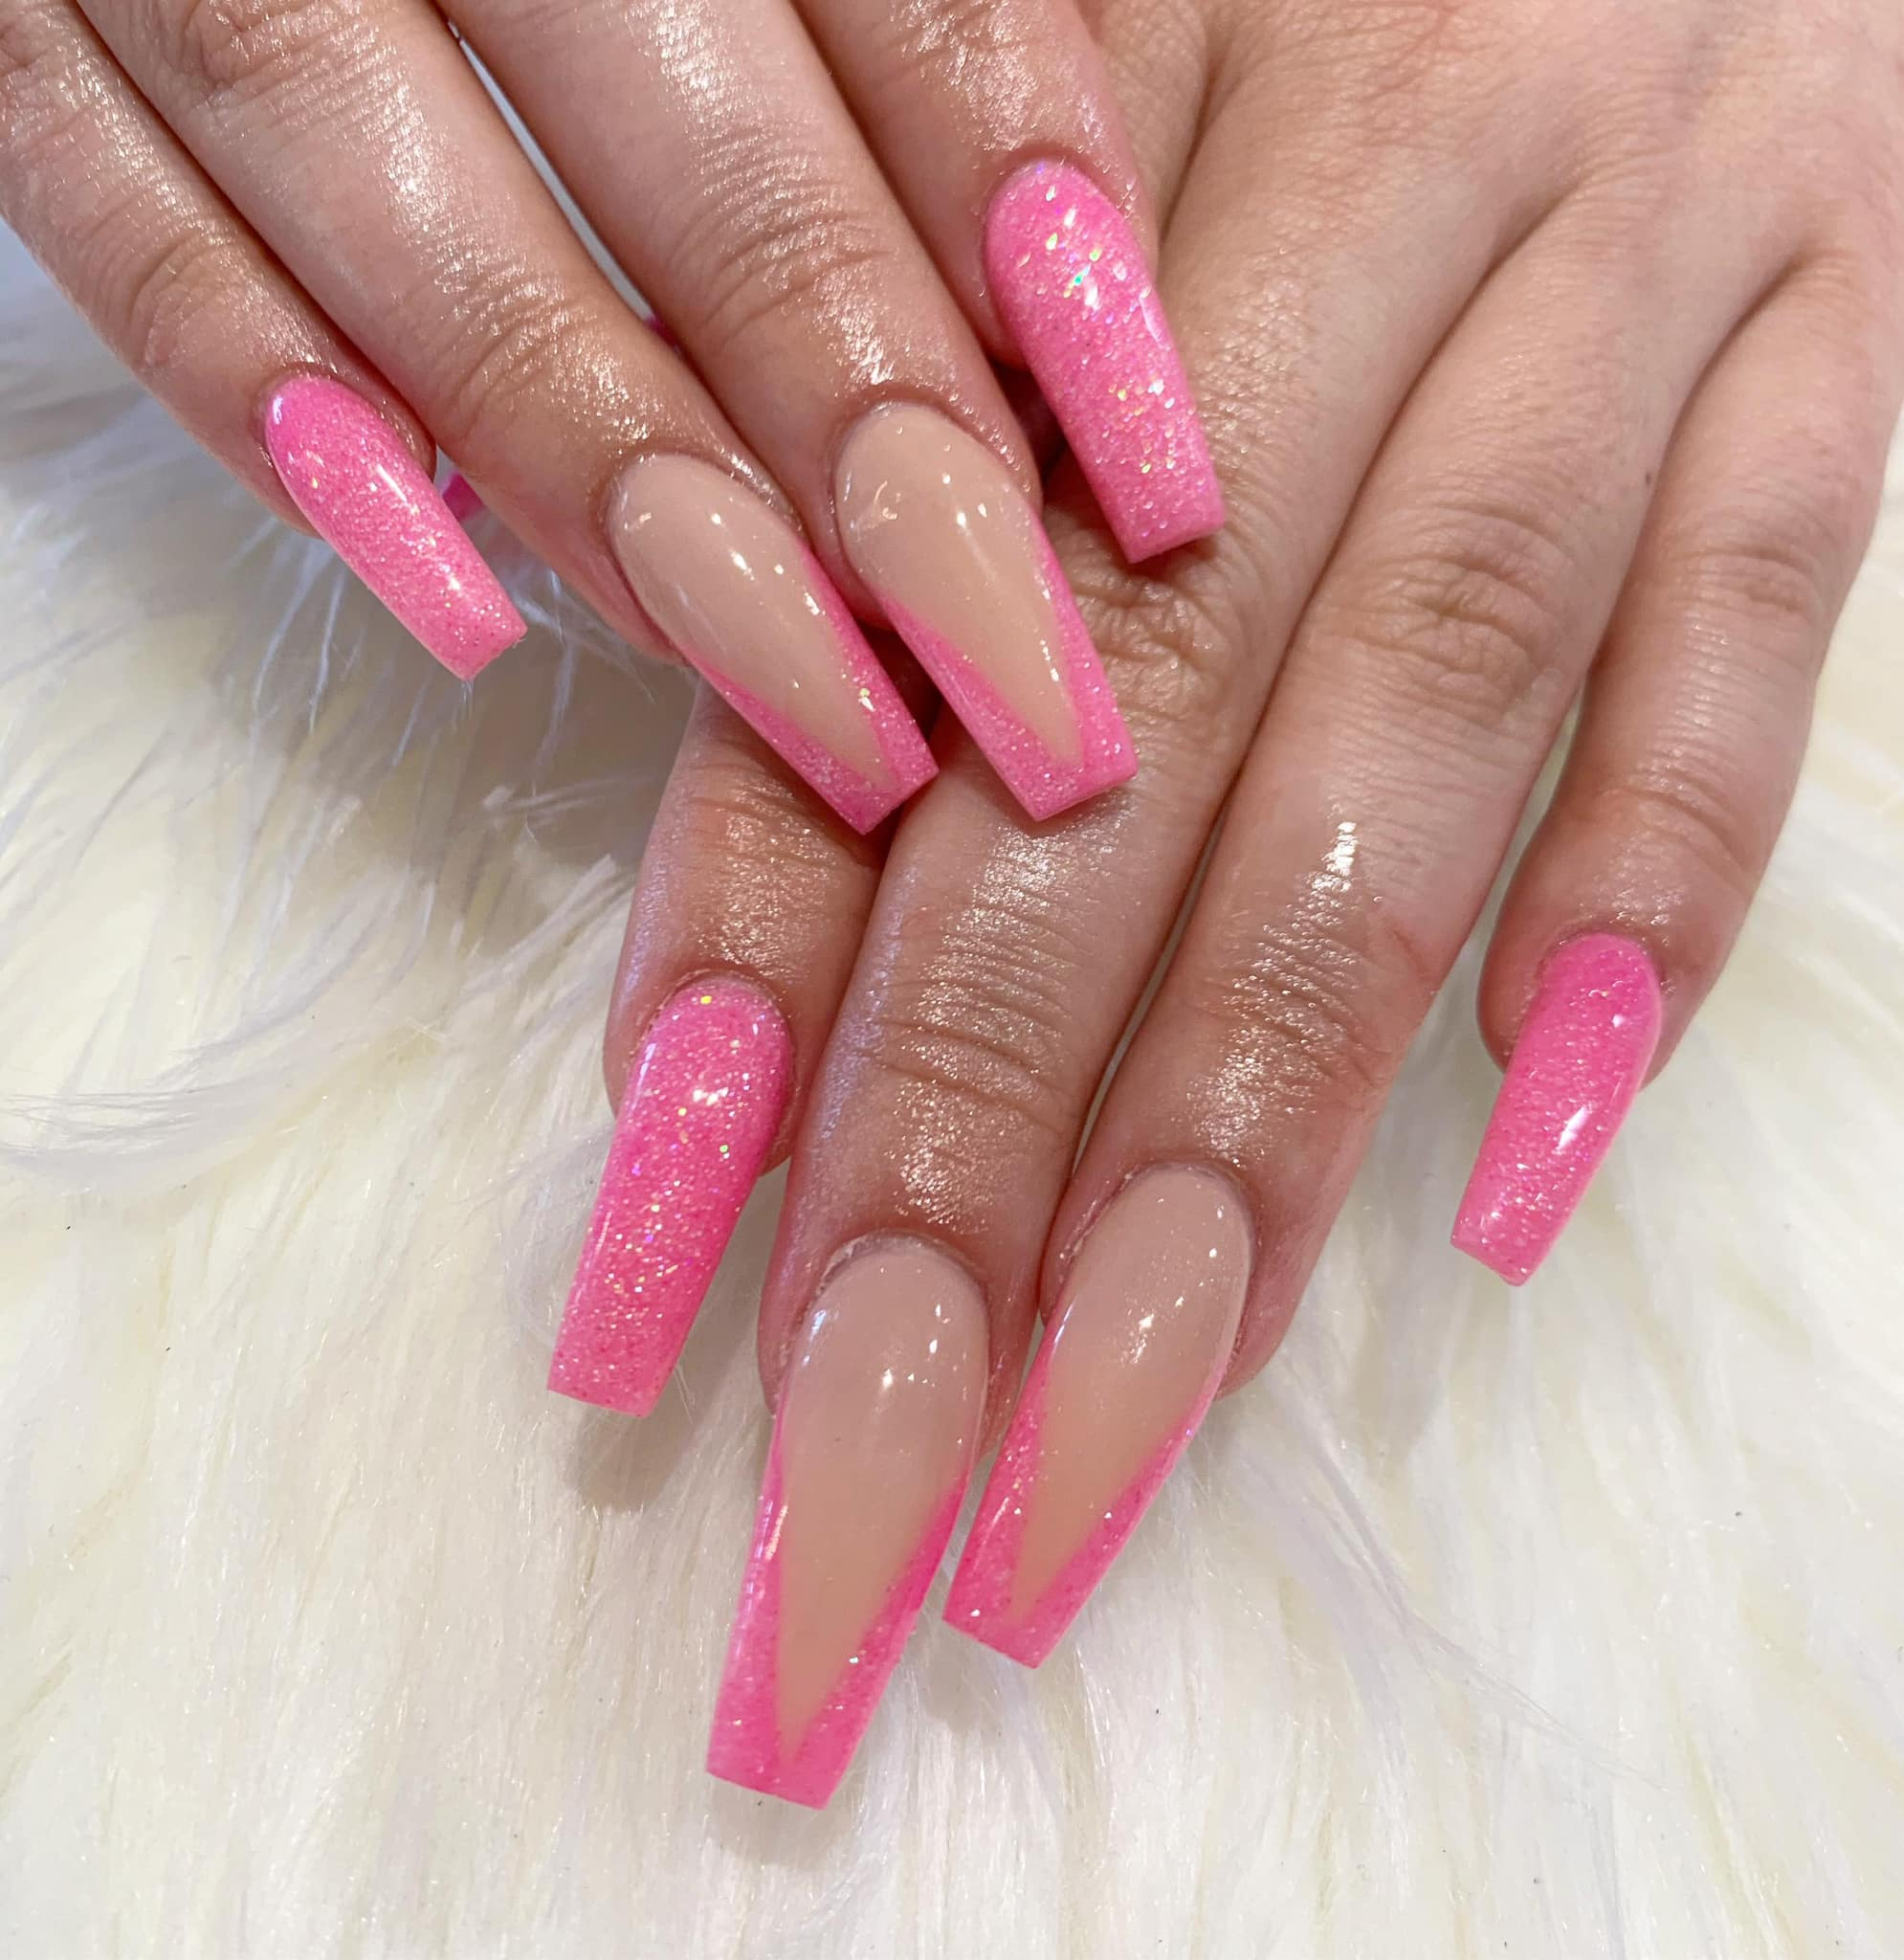 SNS Dipping Powder Pink & White Fill-ins